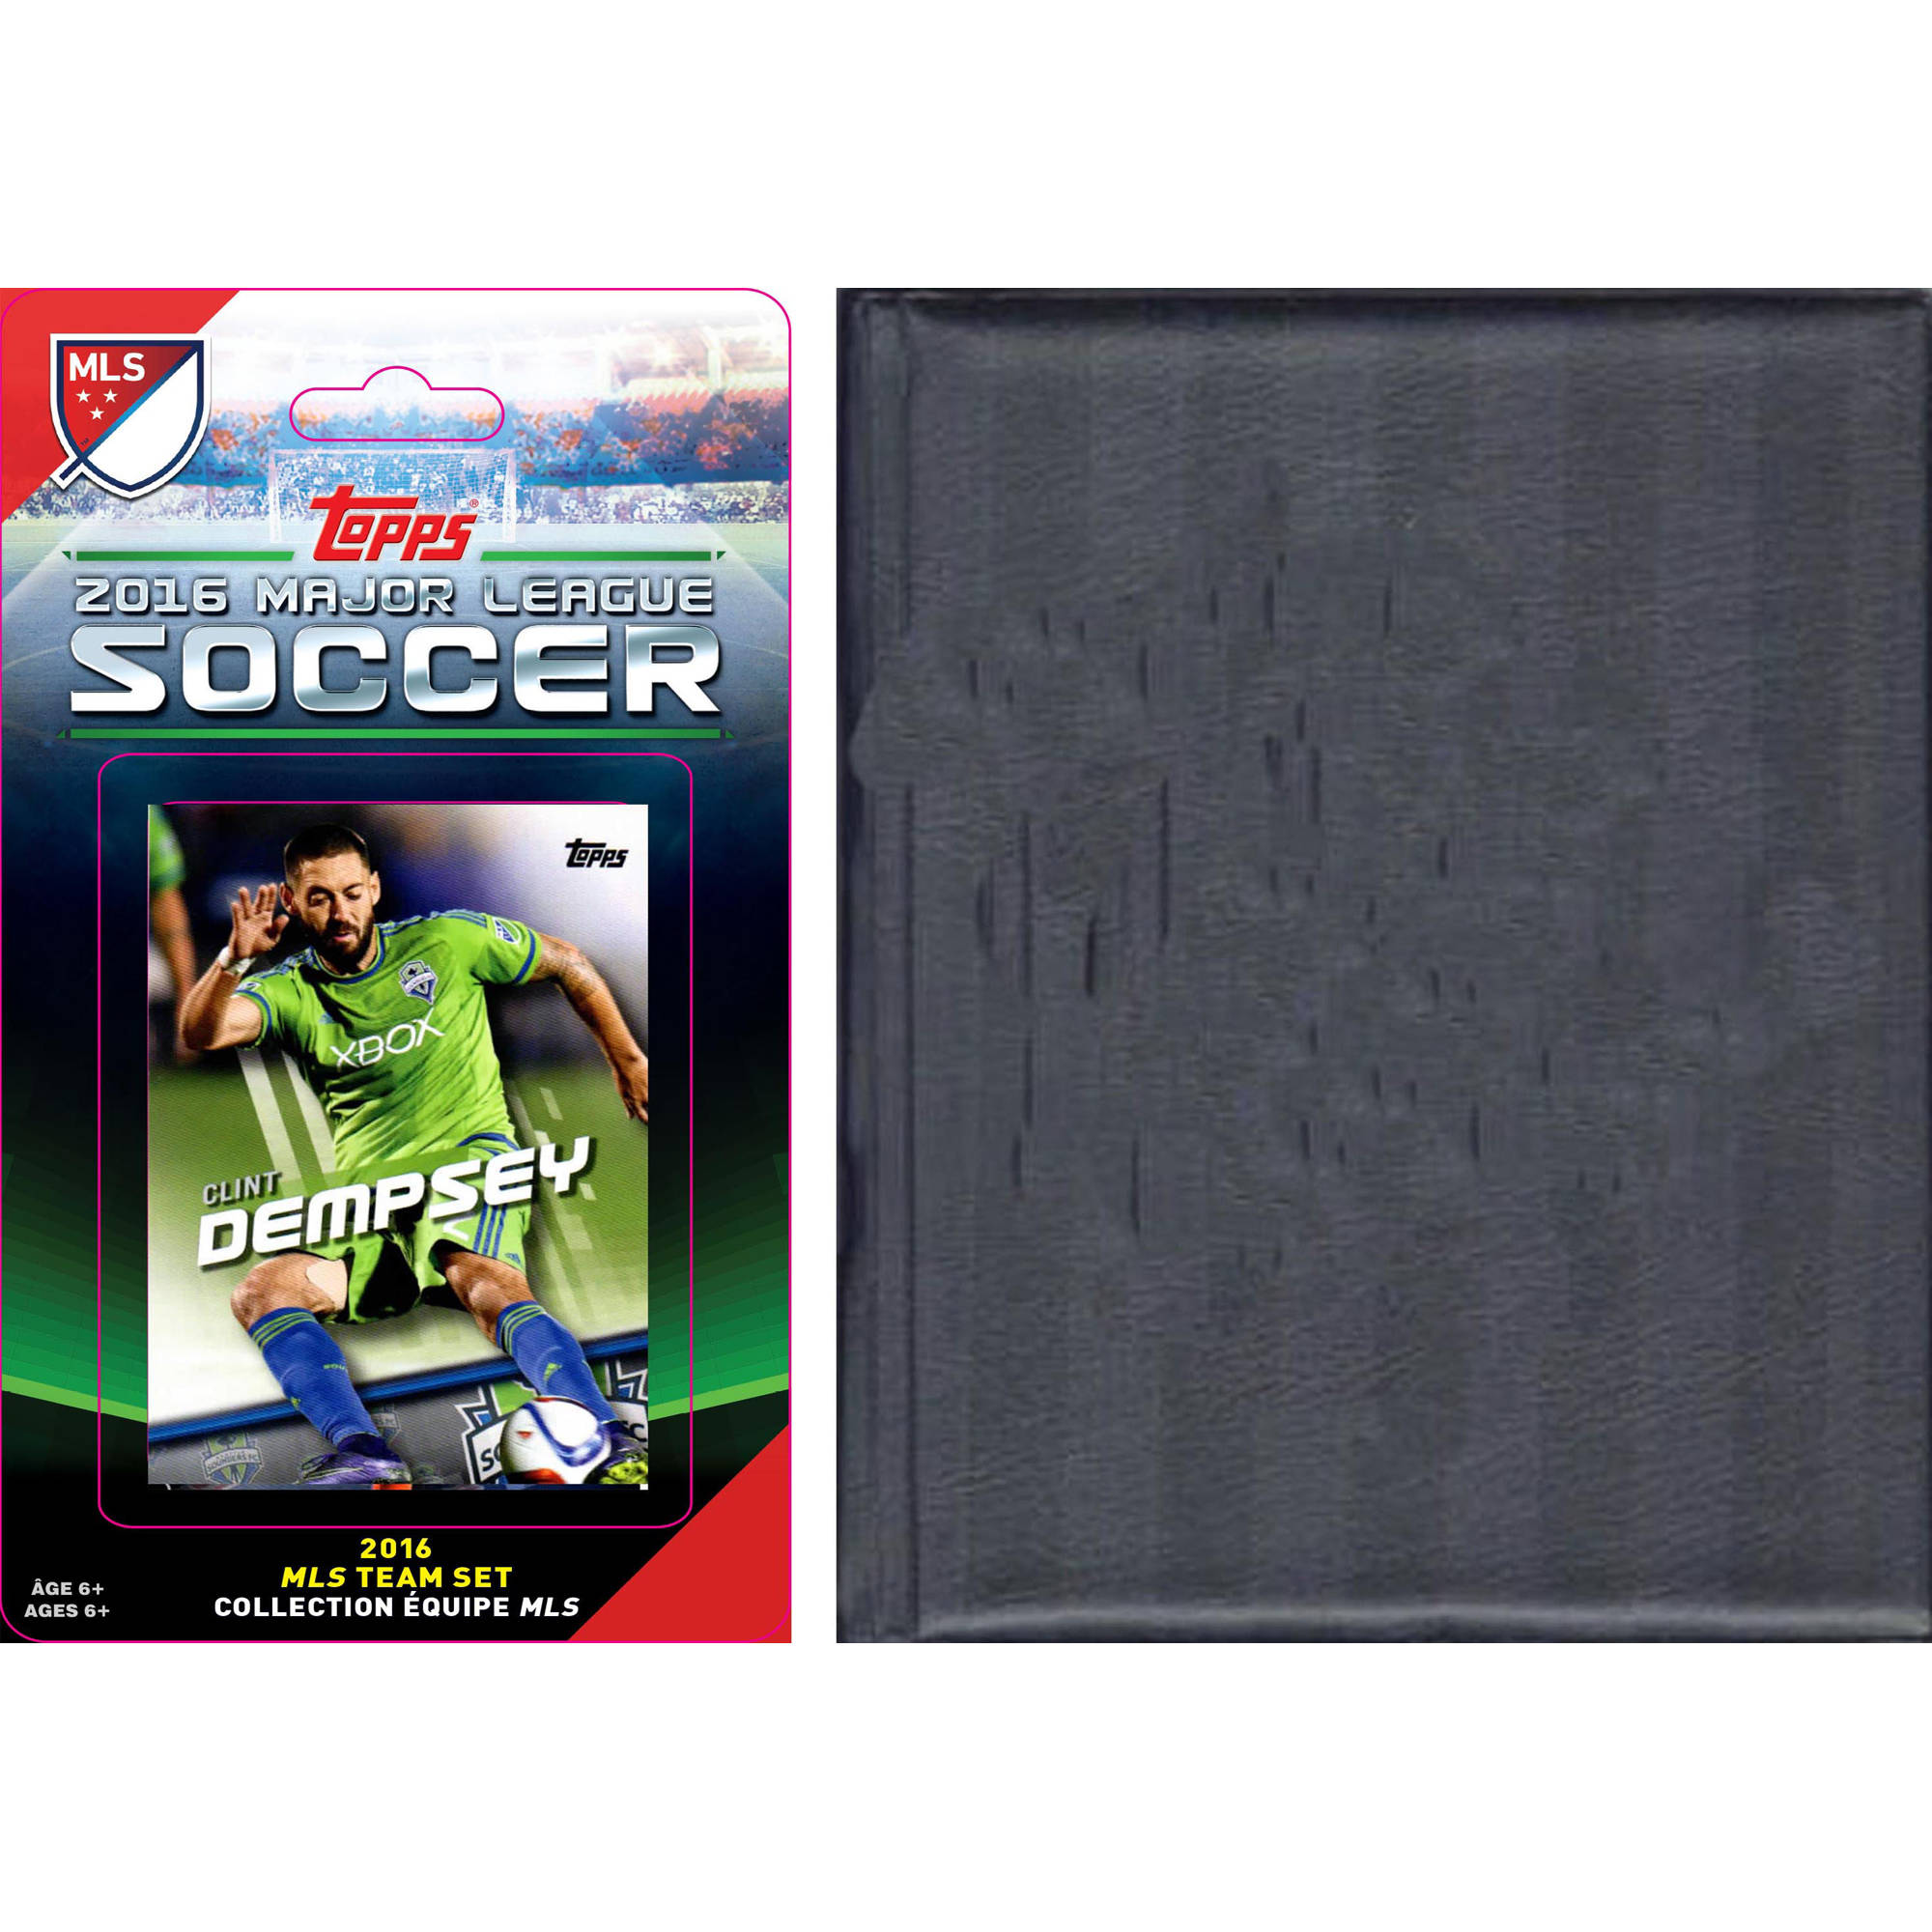 C&I Collectables MLS Seattle Sounders Licensed 2016 Topps Team Set and Storage Album